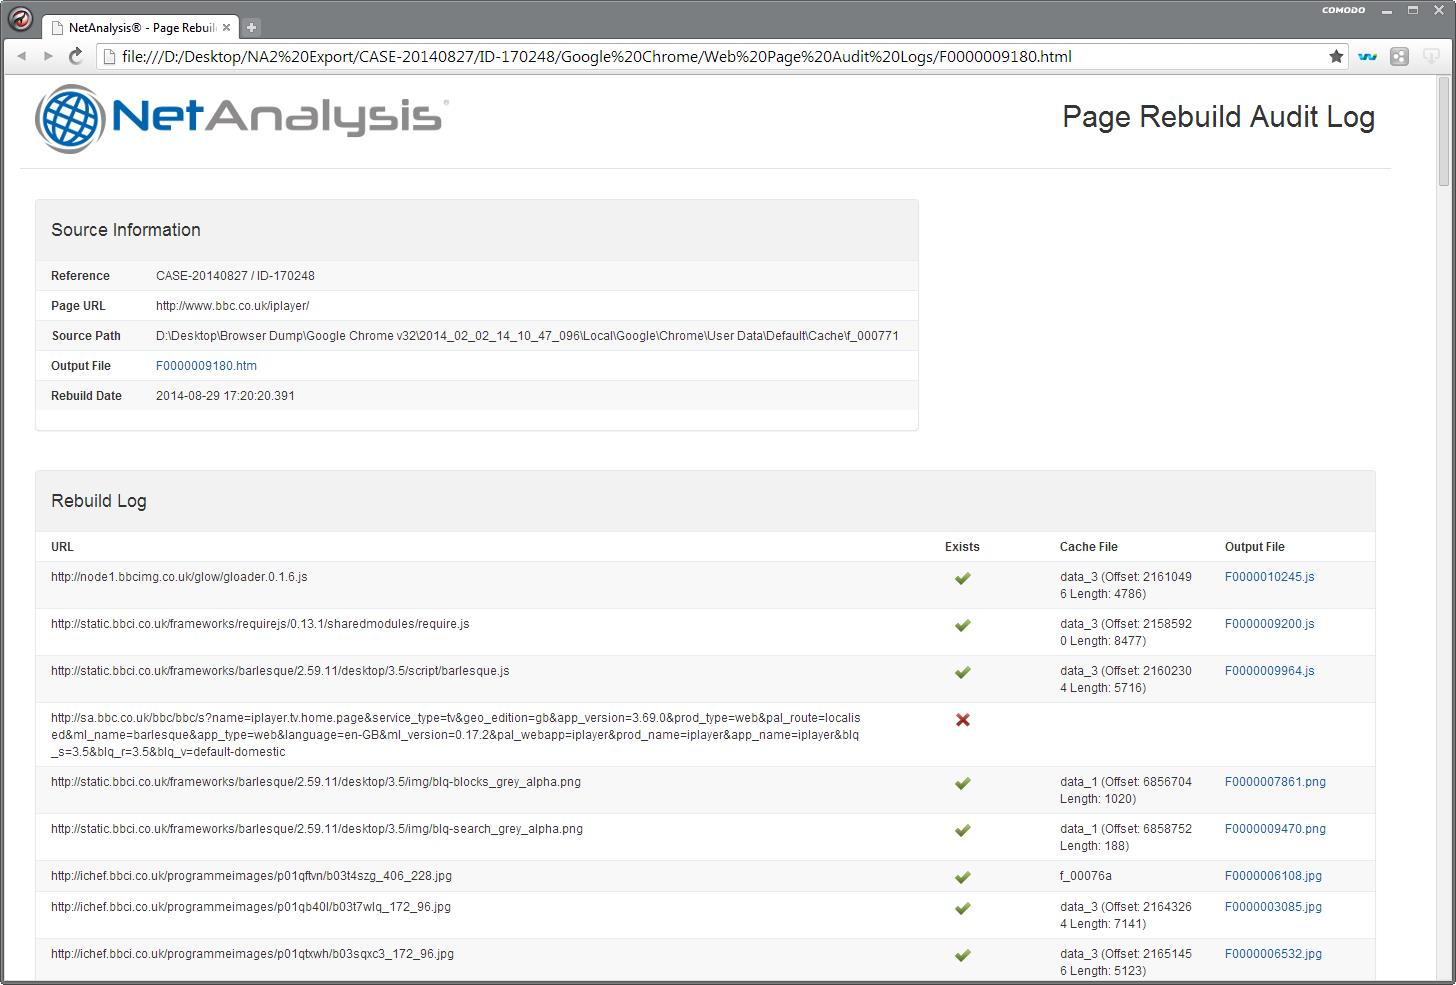 NetAnalysis v2 Web Page Rebuilding Audit Log